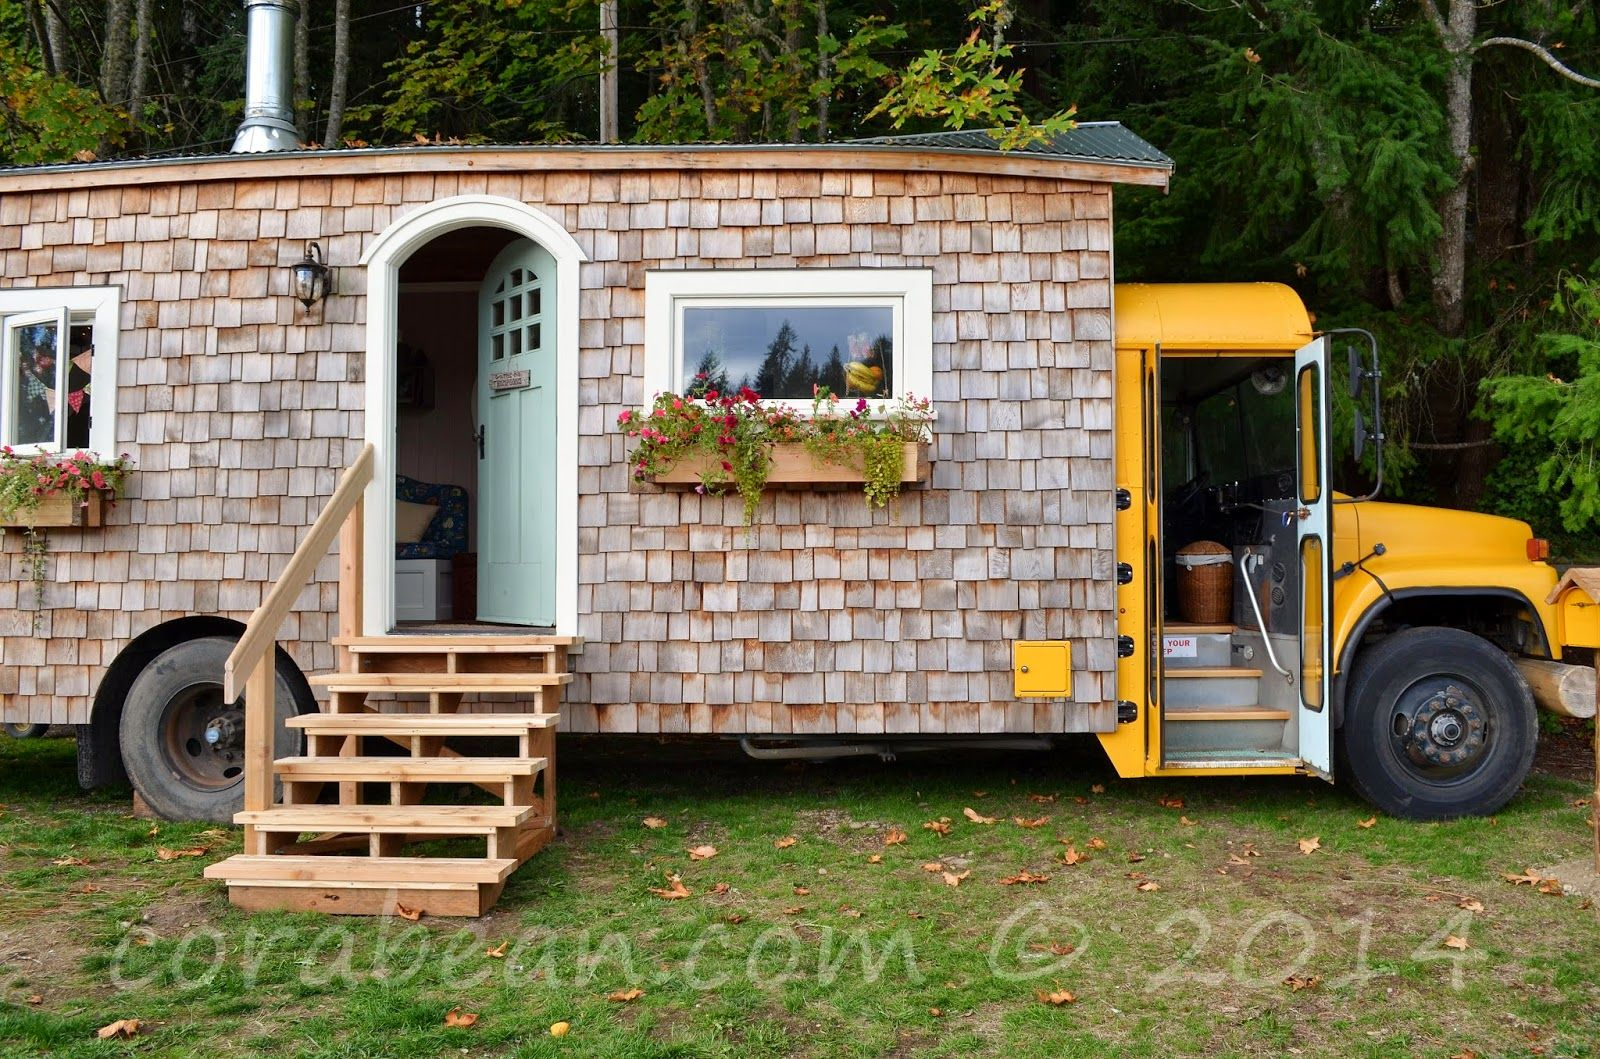 Tremendous 17 Best Images About Tiny House On Pinterest Buses Tiny House Largest Home Design Picture Inspirations Pitcheantrous